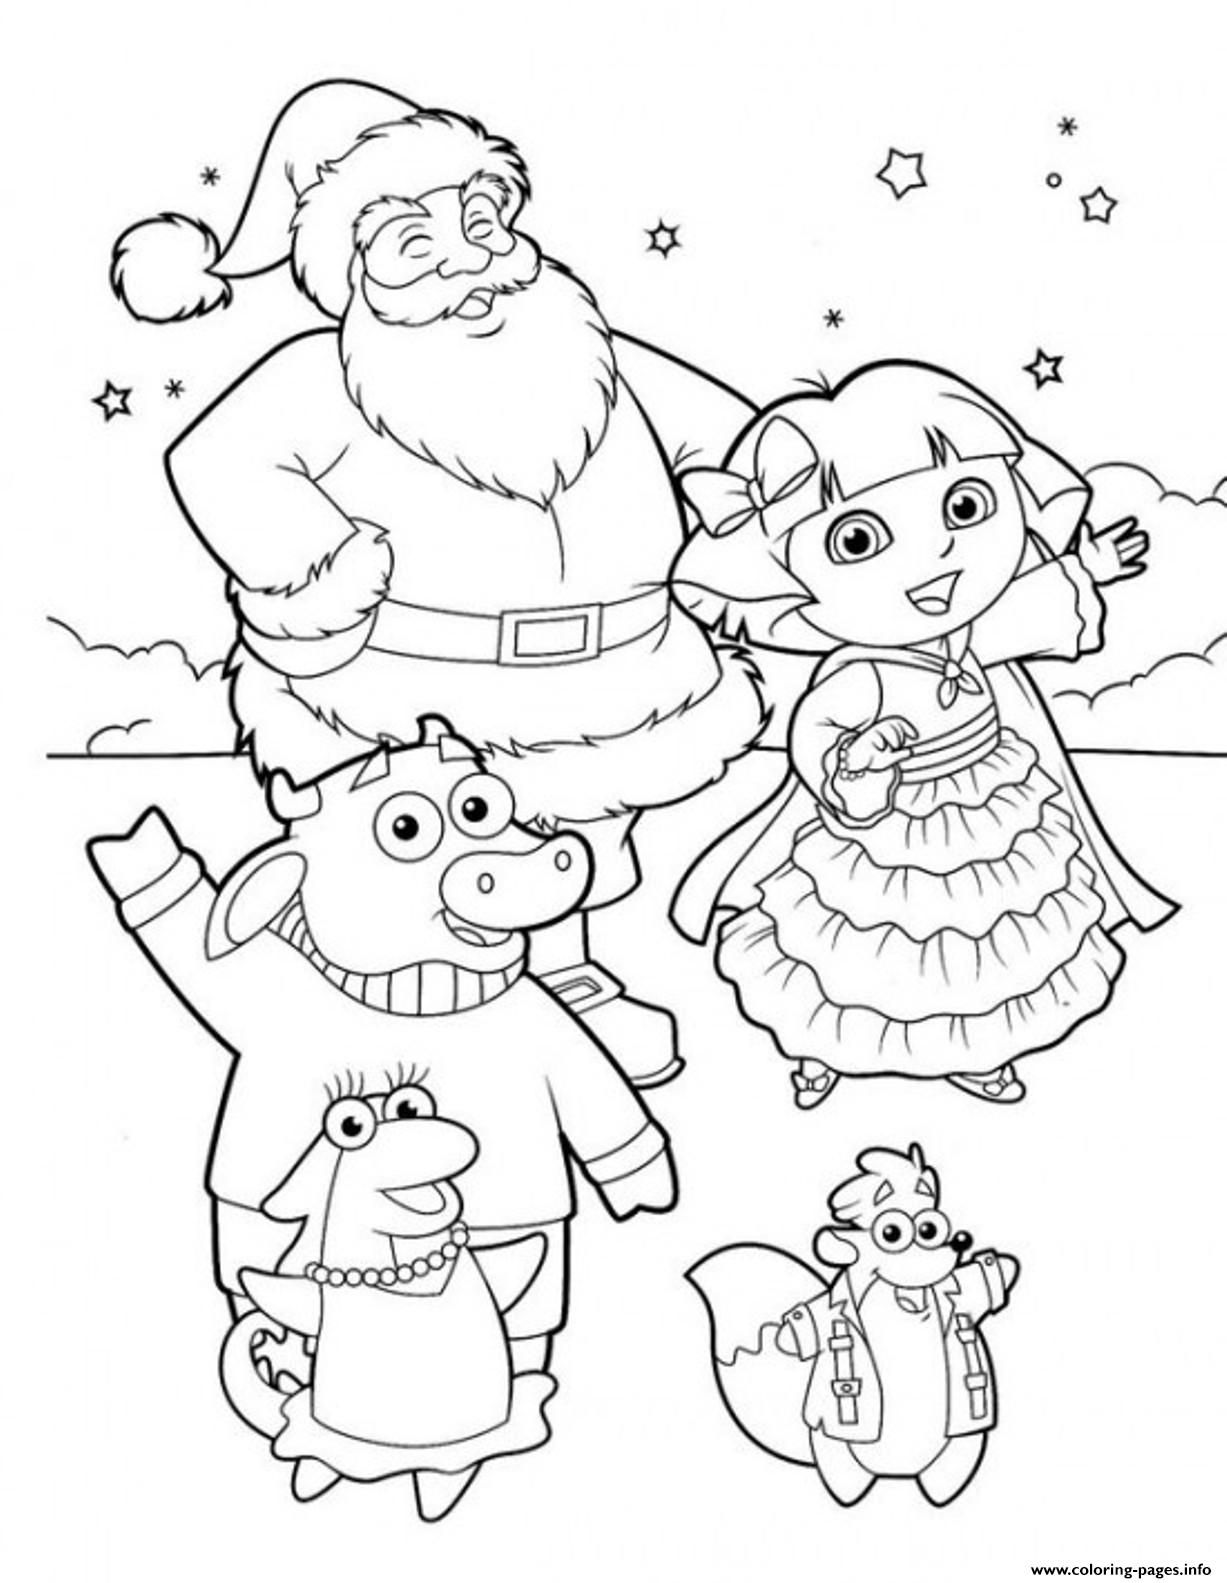 Dora The Explorer Christmas Coloring Pages Coloring Pages Allow Kids To Accompany Their F Bubble Guppies Coloring Pages Dora Coloring Cartoon Coloring Pages